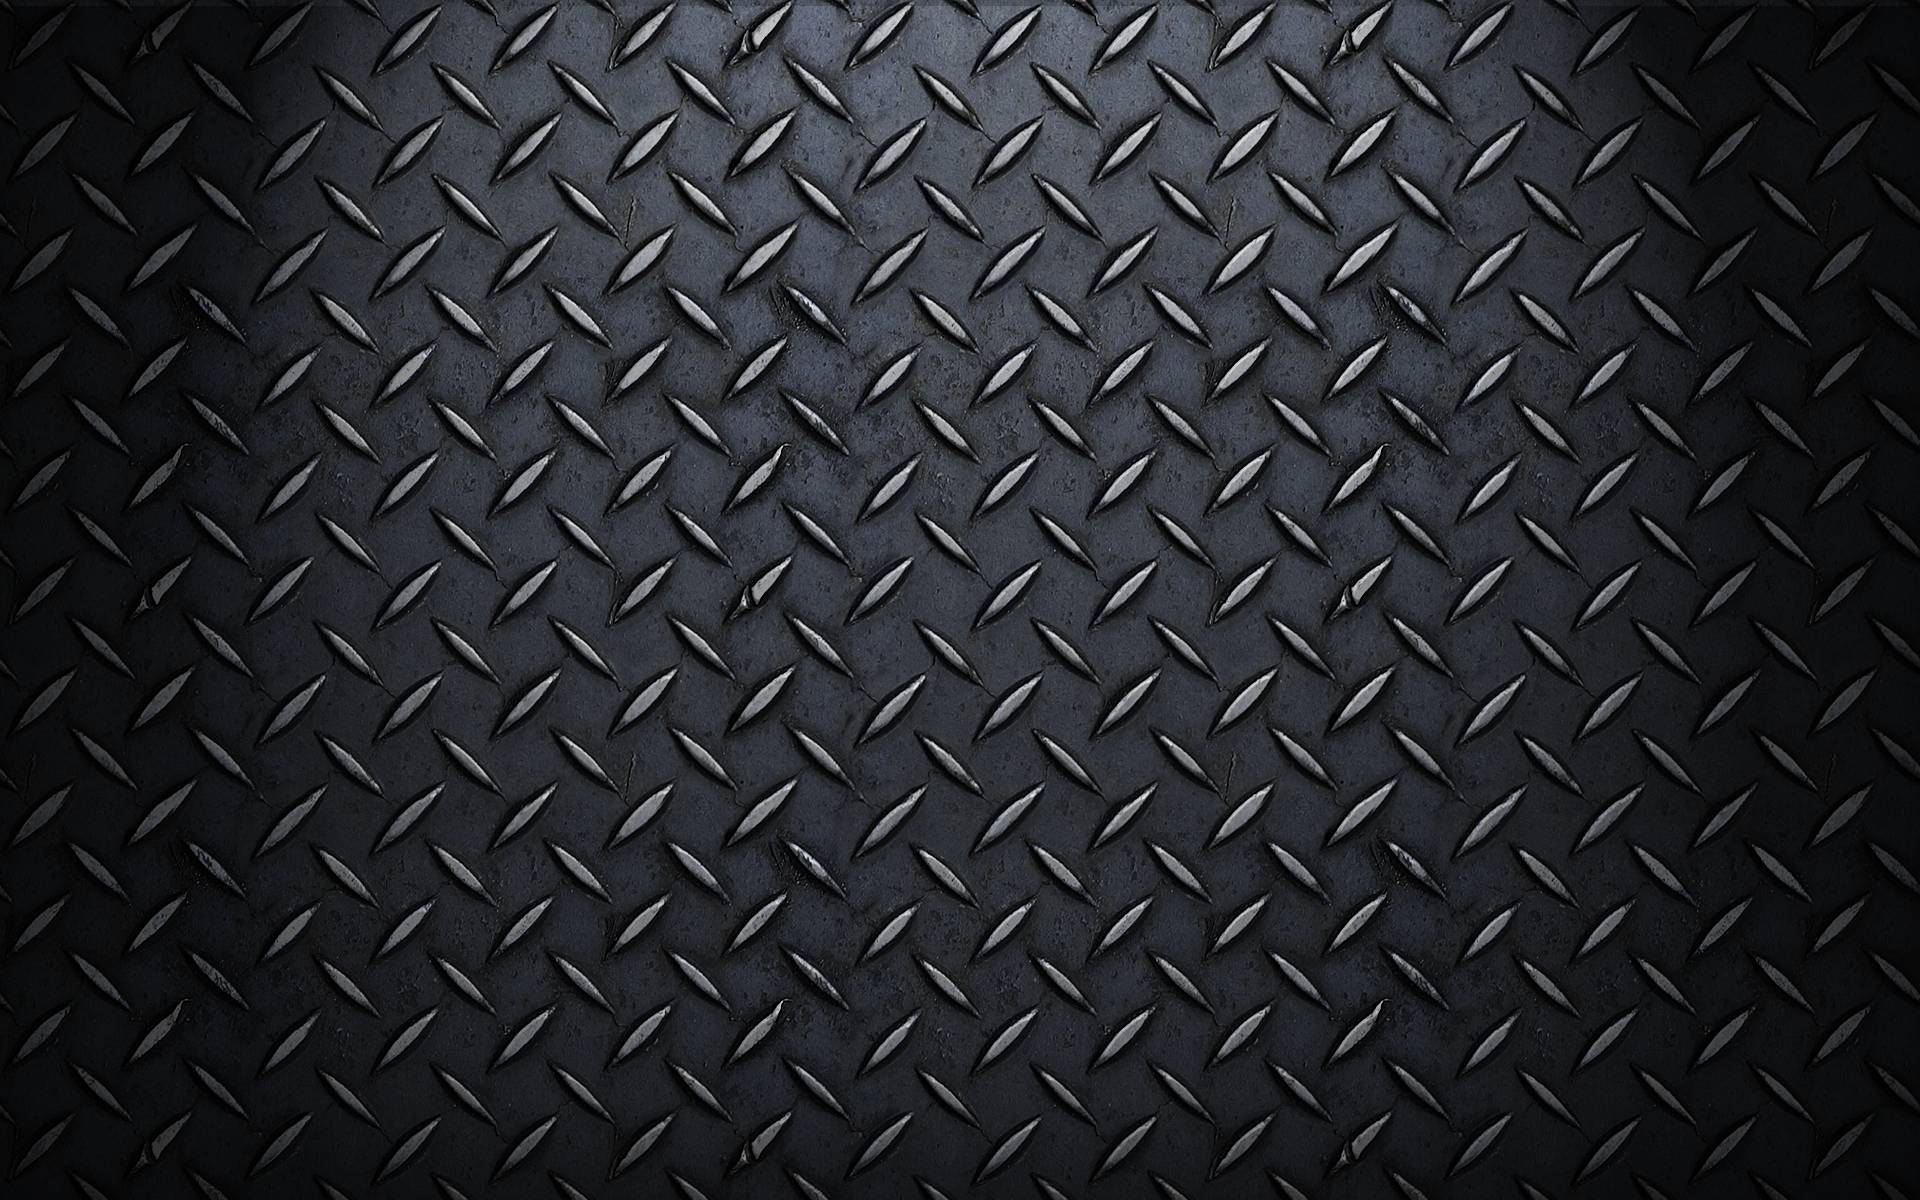 Black-Metal-Texture-×-Metal-Texture-wallpaper-wp3603420